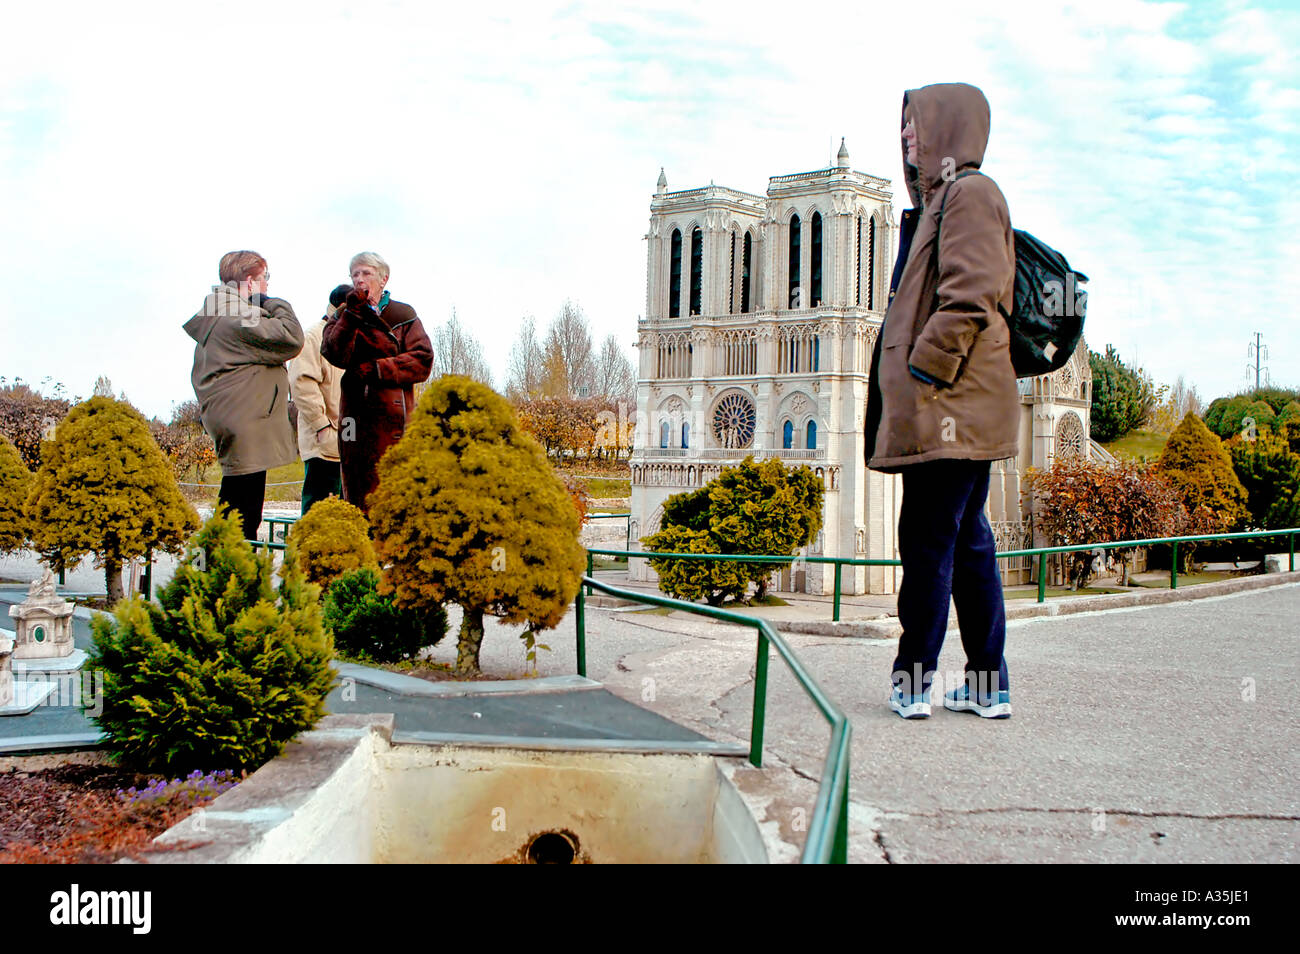 Paris France, Women Tourists Visiting 'France Miniature' Theme Park, Architectural Models of French Monuments in Elancourt - Stock Image